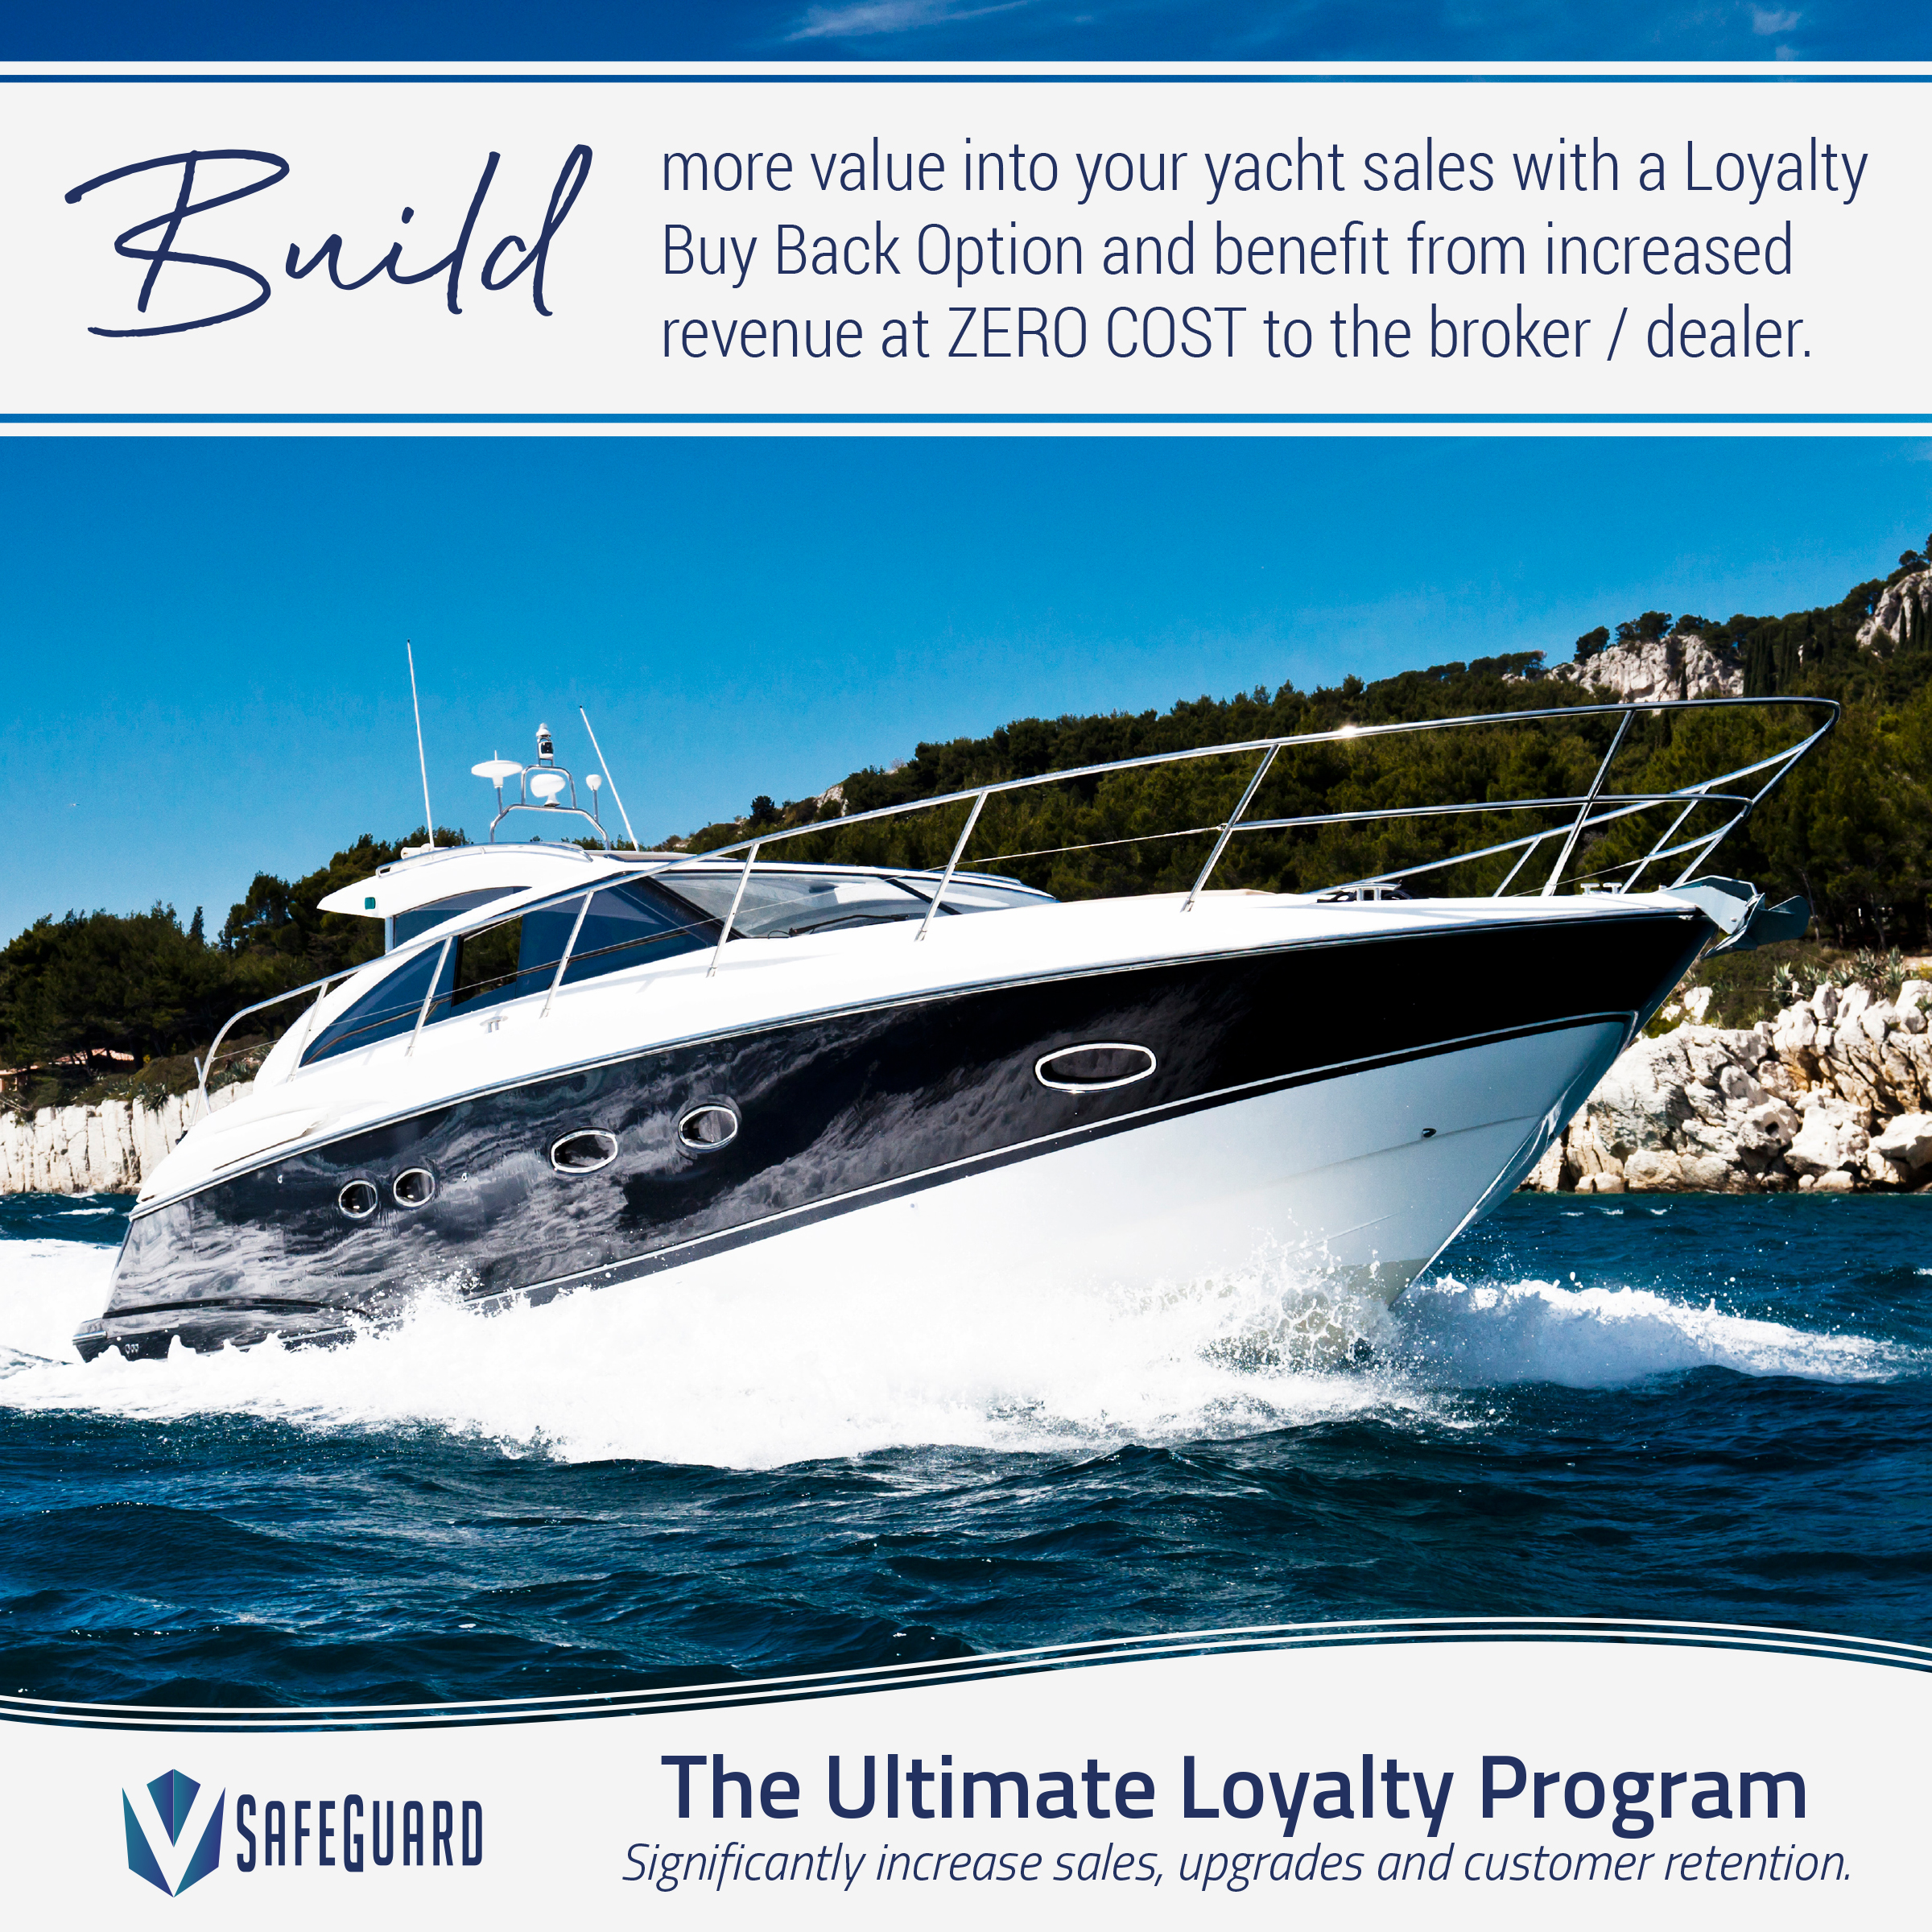 SafeGuard Loyalty Program Brings Added Value To Yacht Ownership